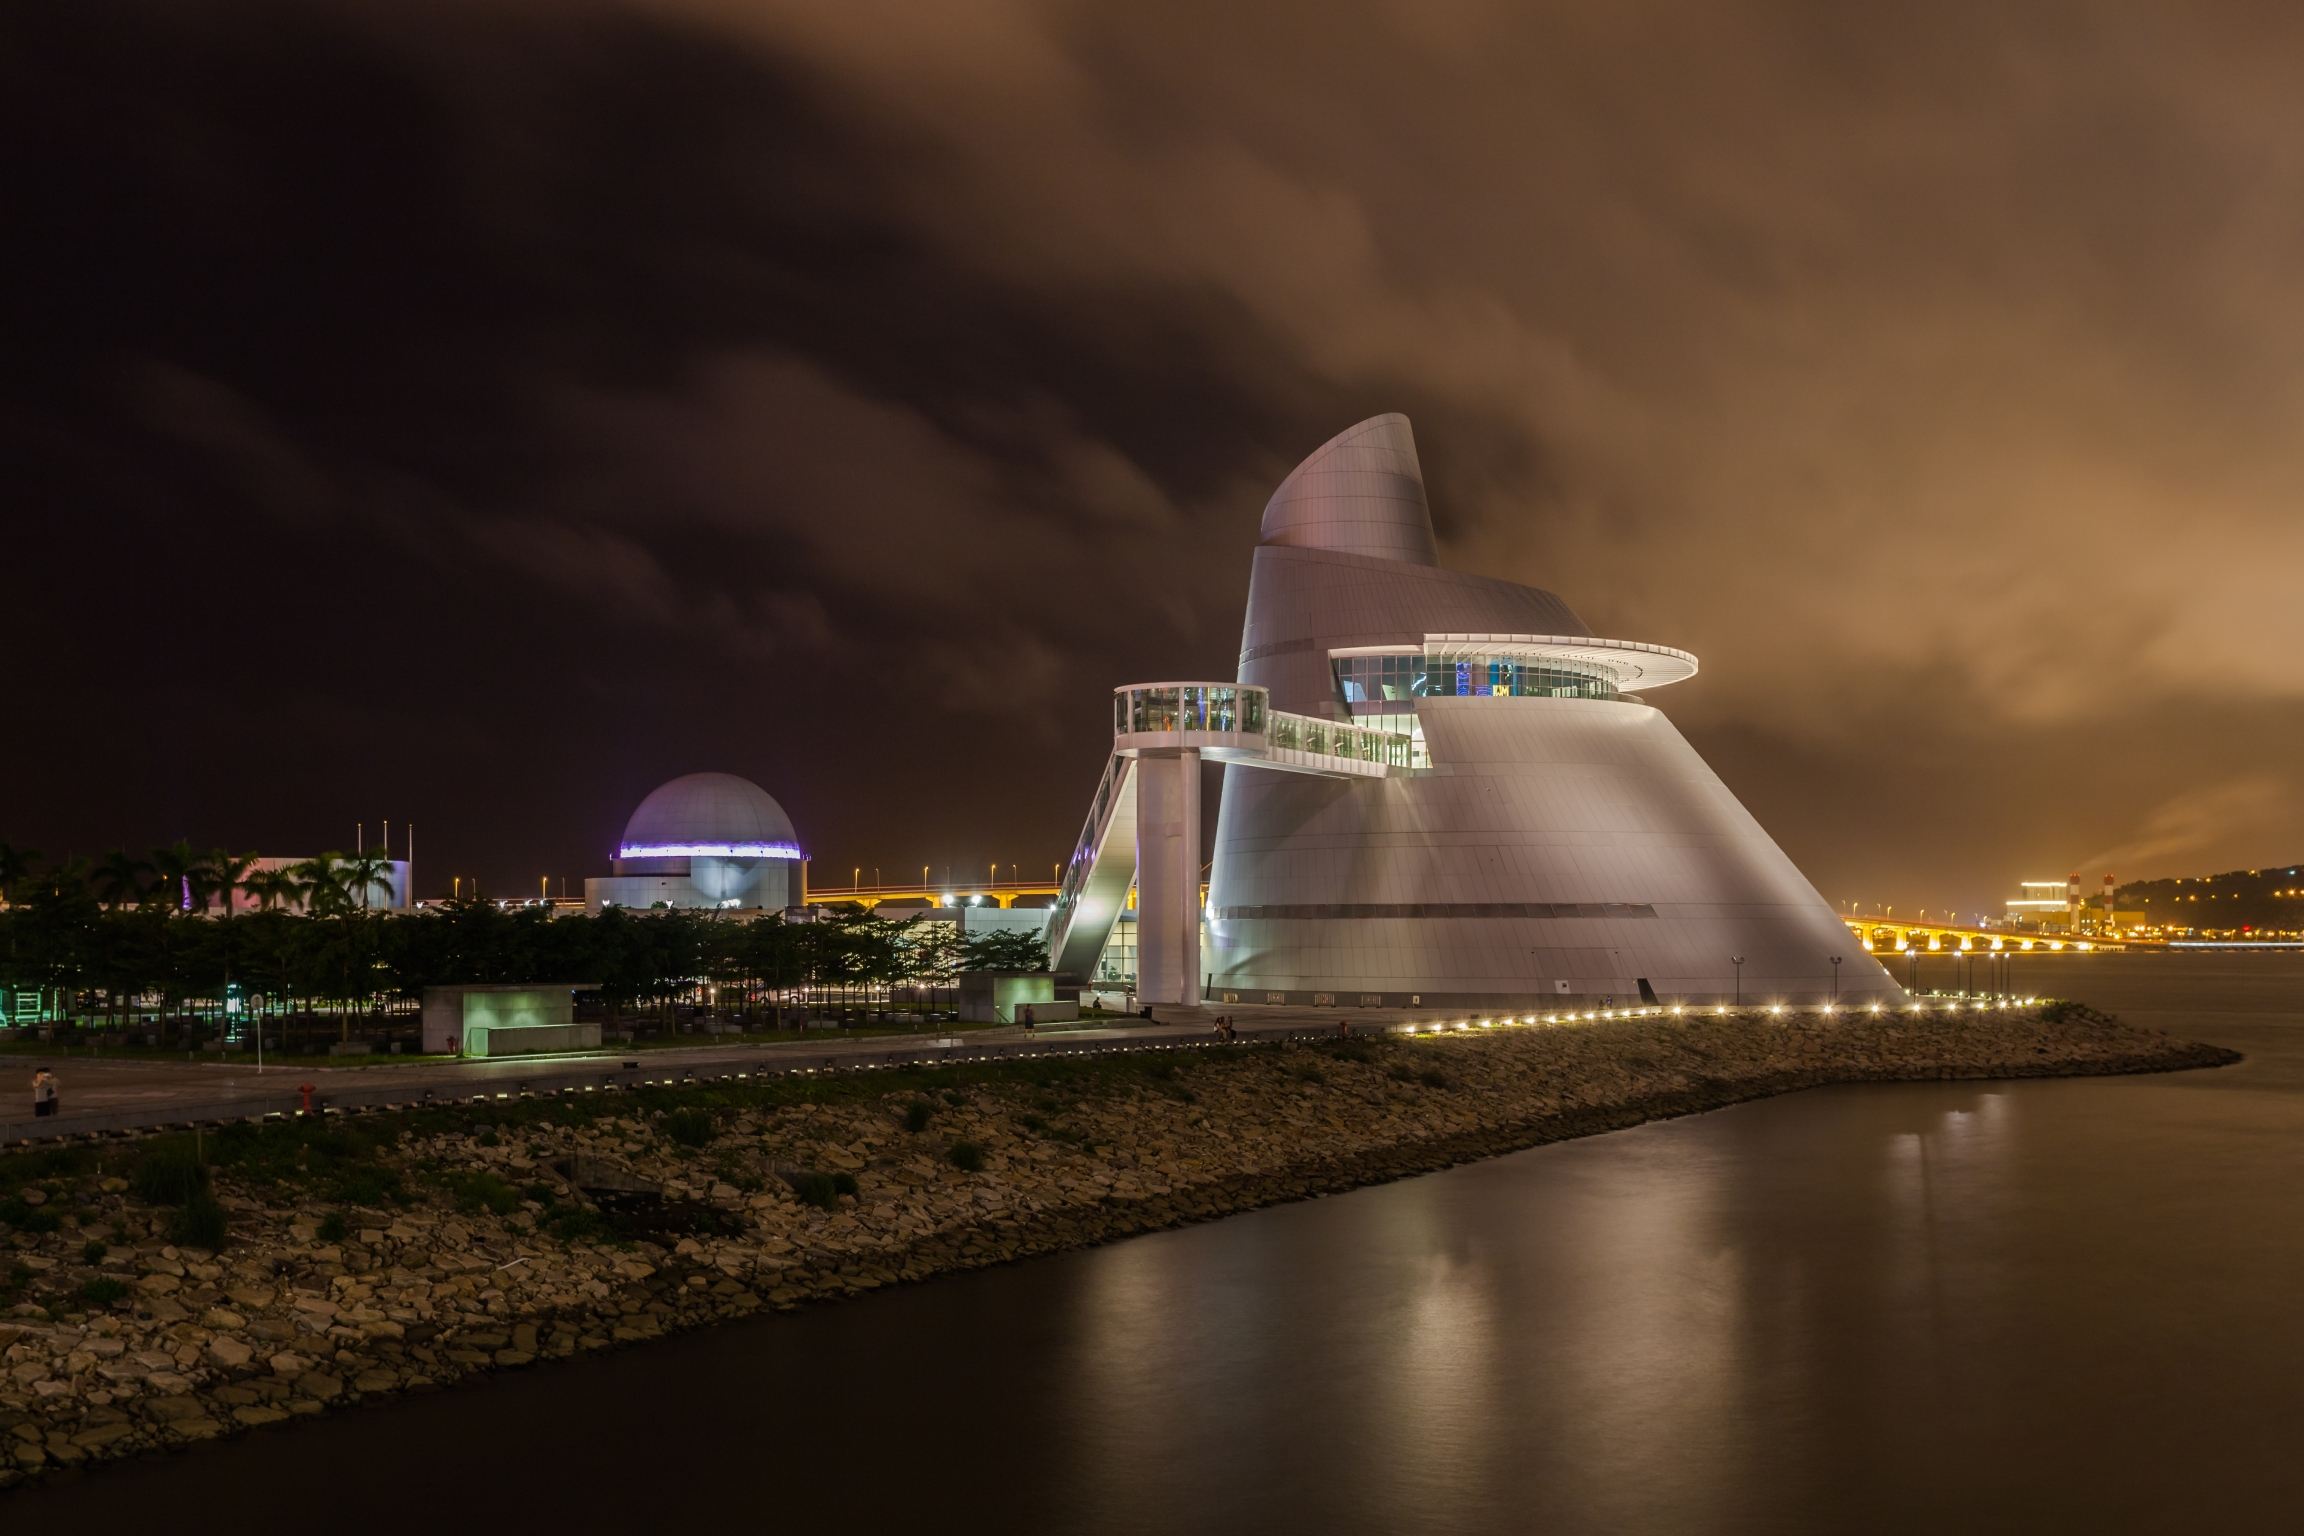 A night time view of the Macau Science Center along the water.